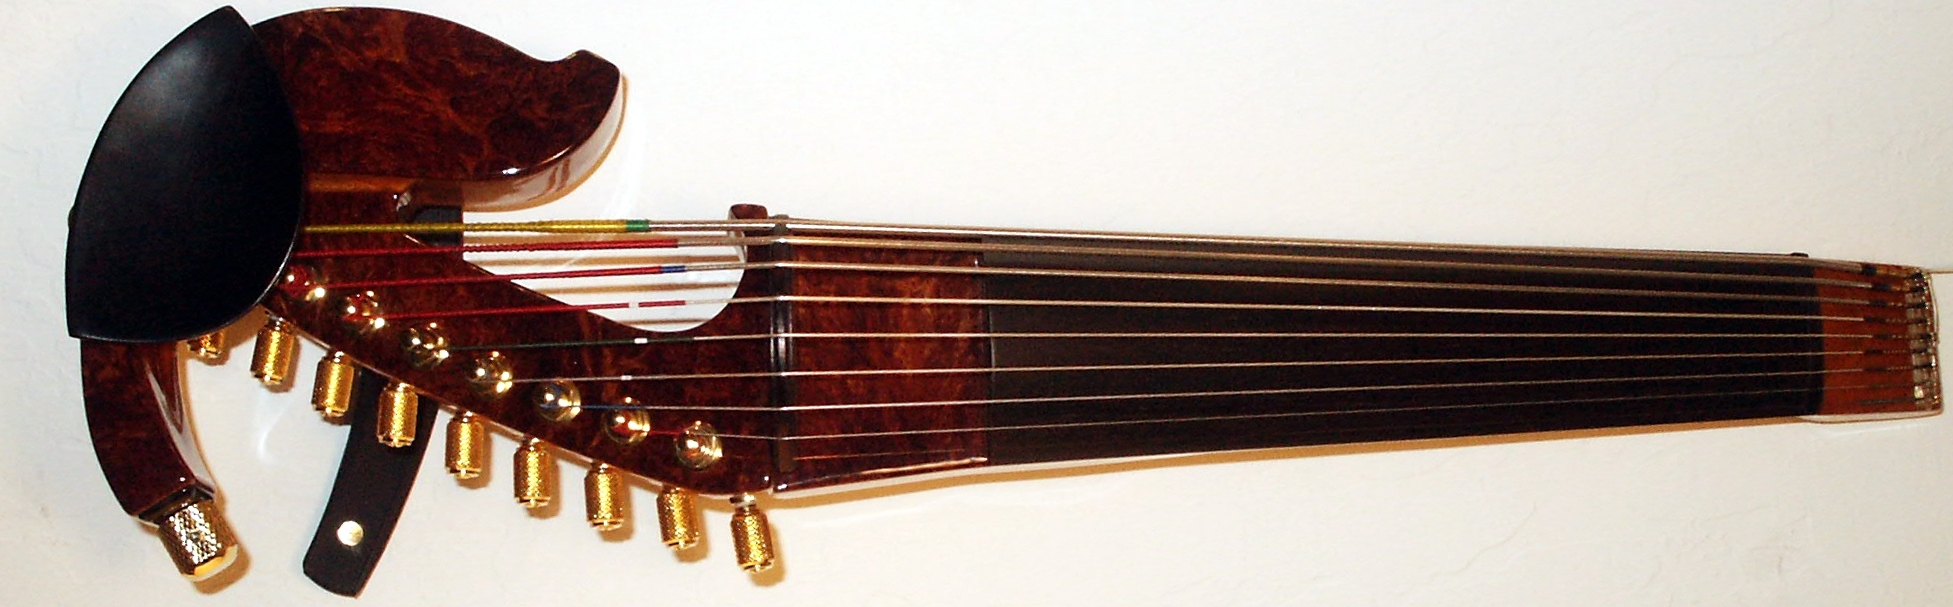 Redwood Burl Faced Nine String Violin High Res.JPG